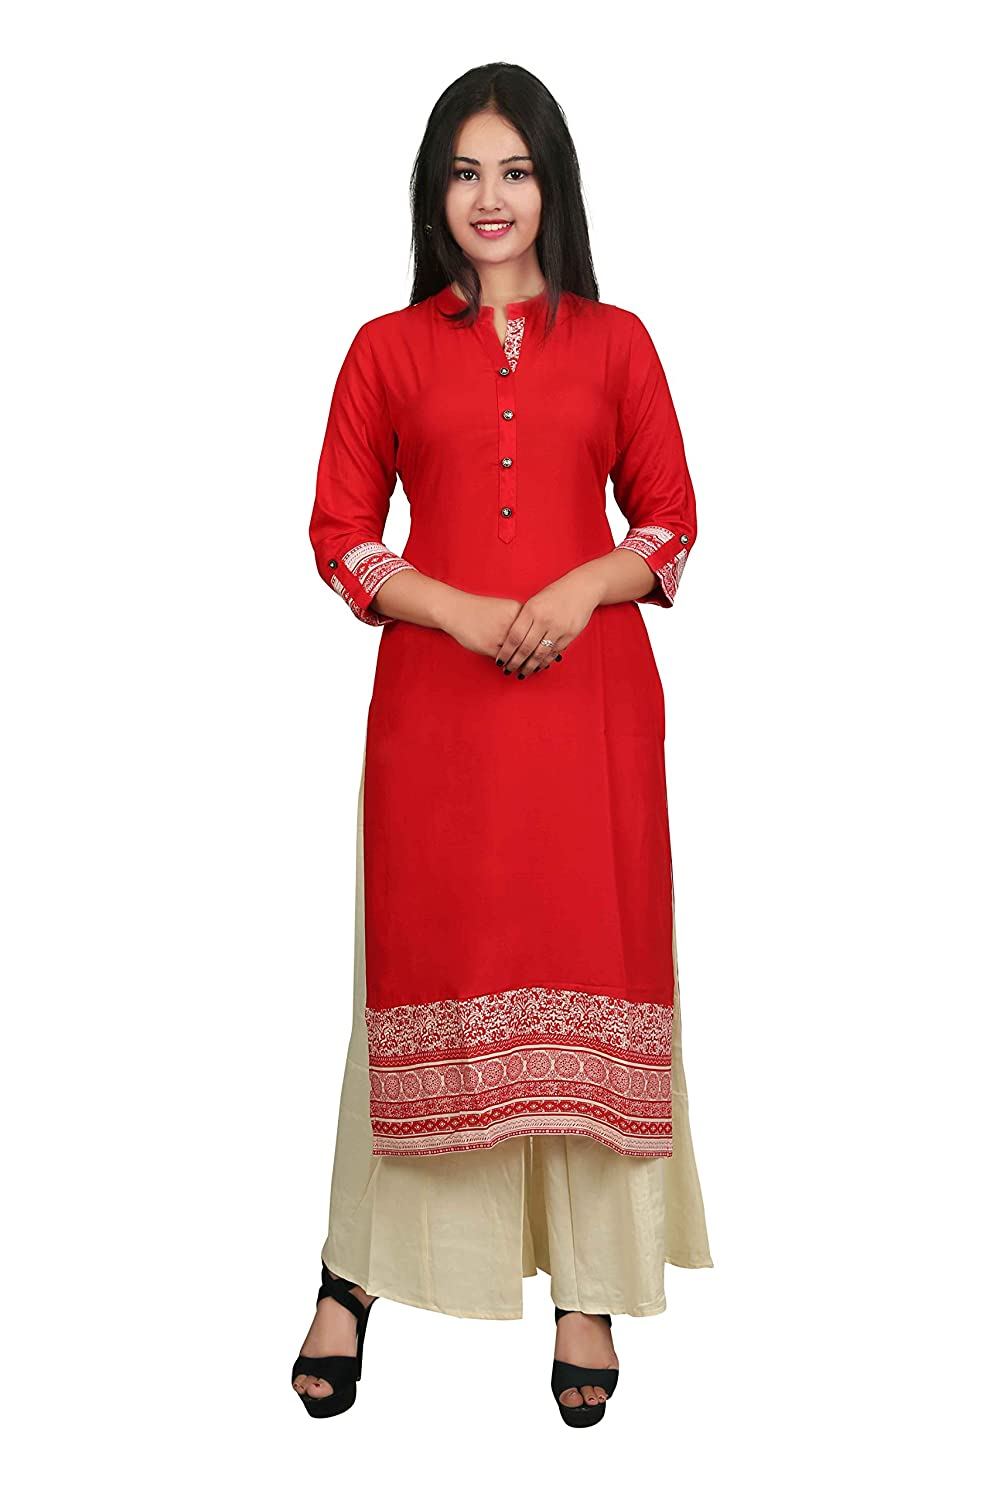 Red Solid 3/4 Sleeve Cotton Women's Kurta and Palazzo Set Indian Handicrfats Export D1-Red-Baige-XXL